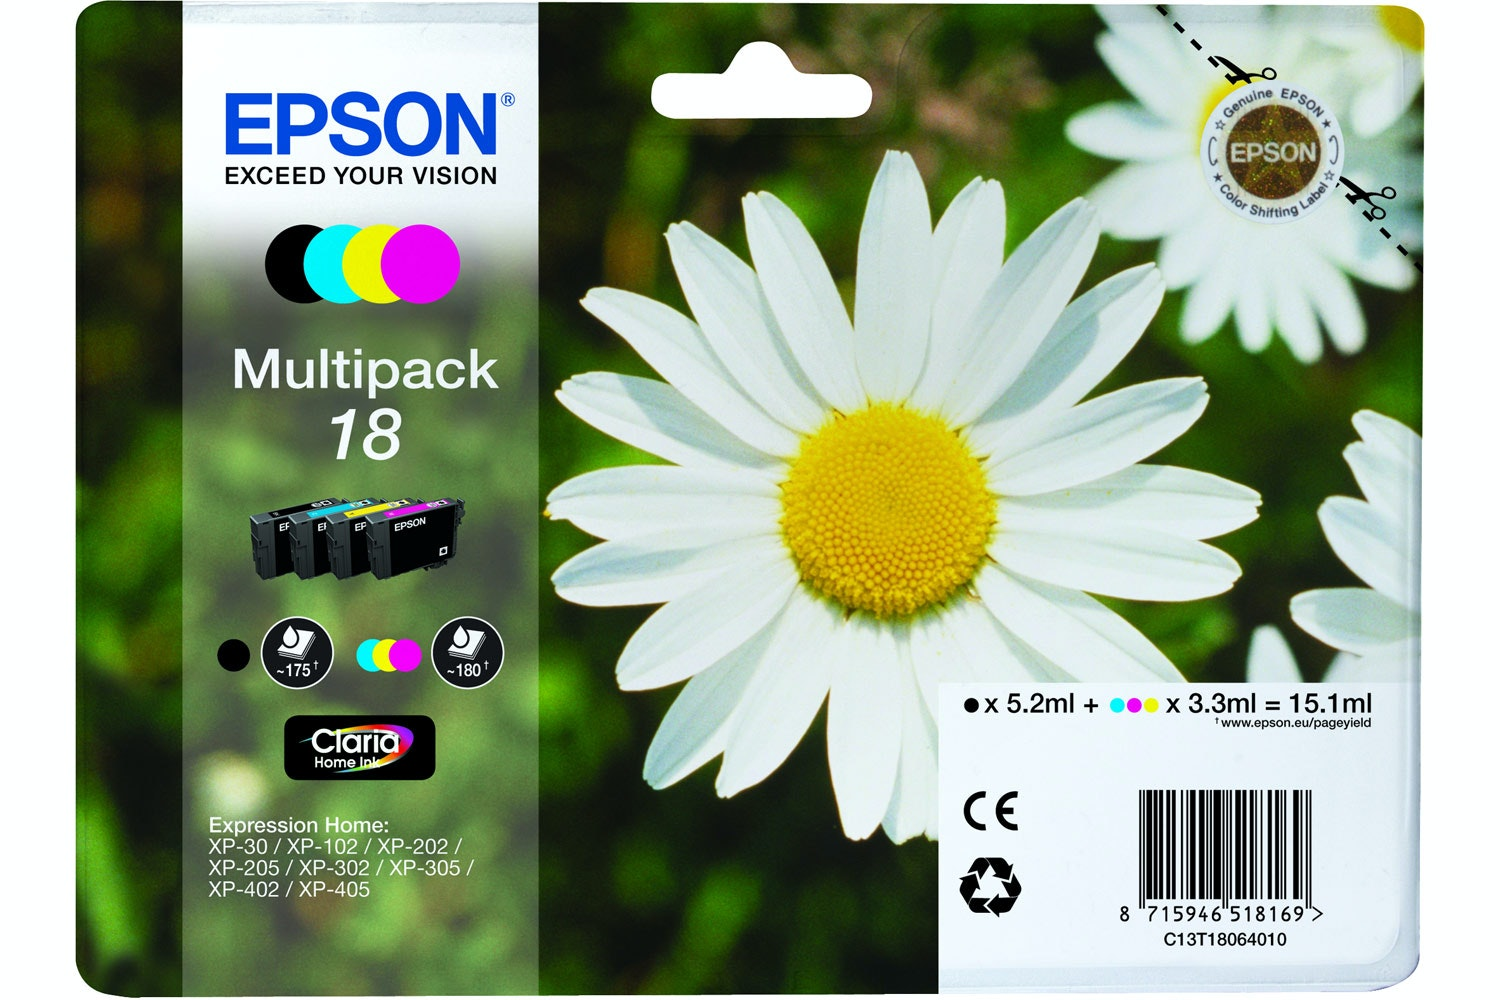 Epson Daisy Ink Multipack